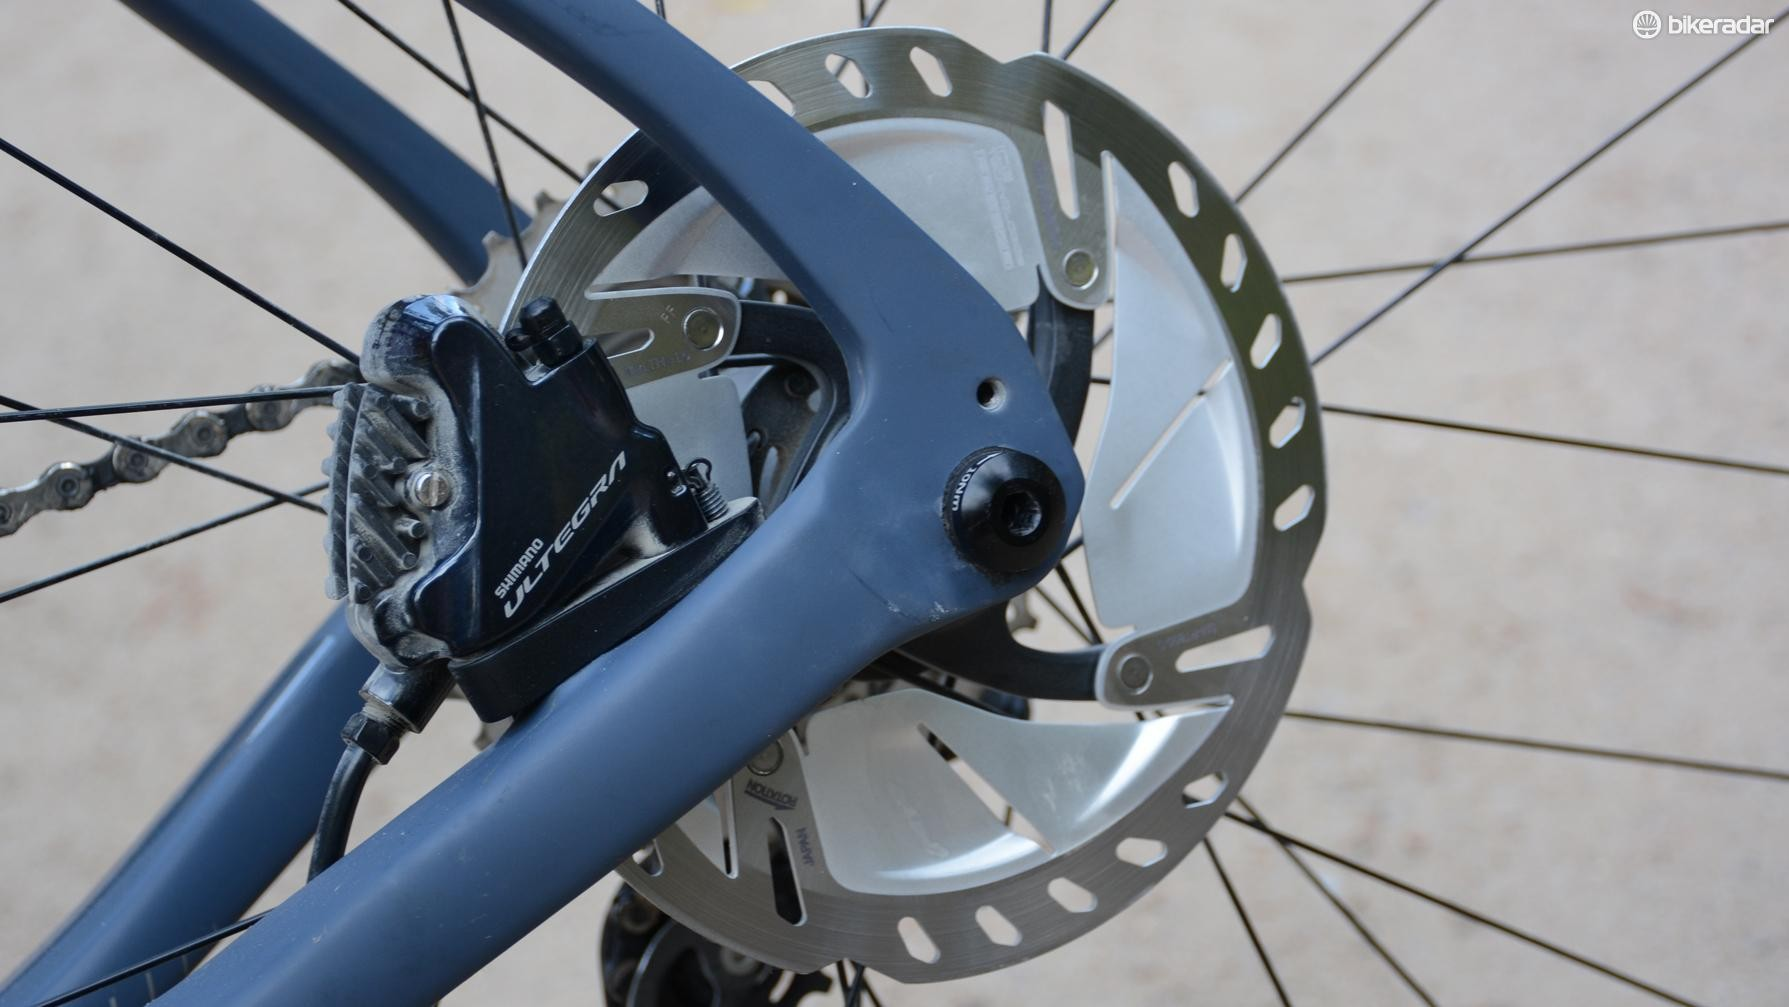 Disc brakes are better. Disc brakes with high-tech rotors are even better